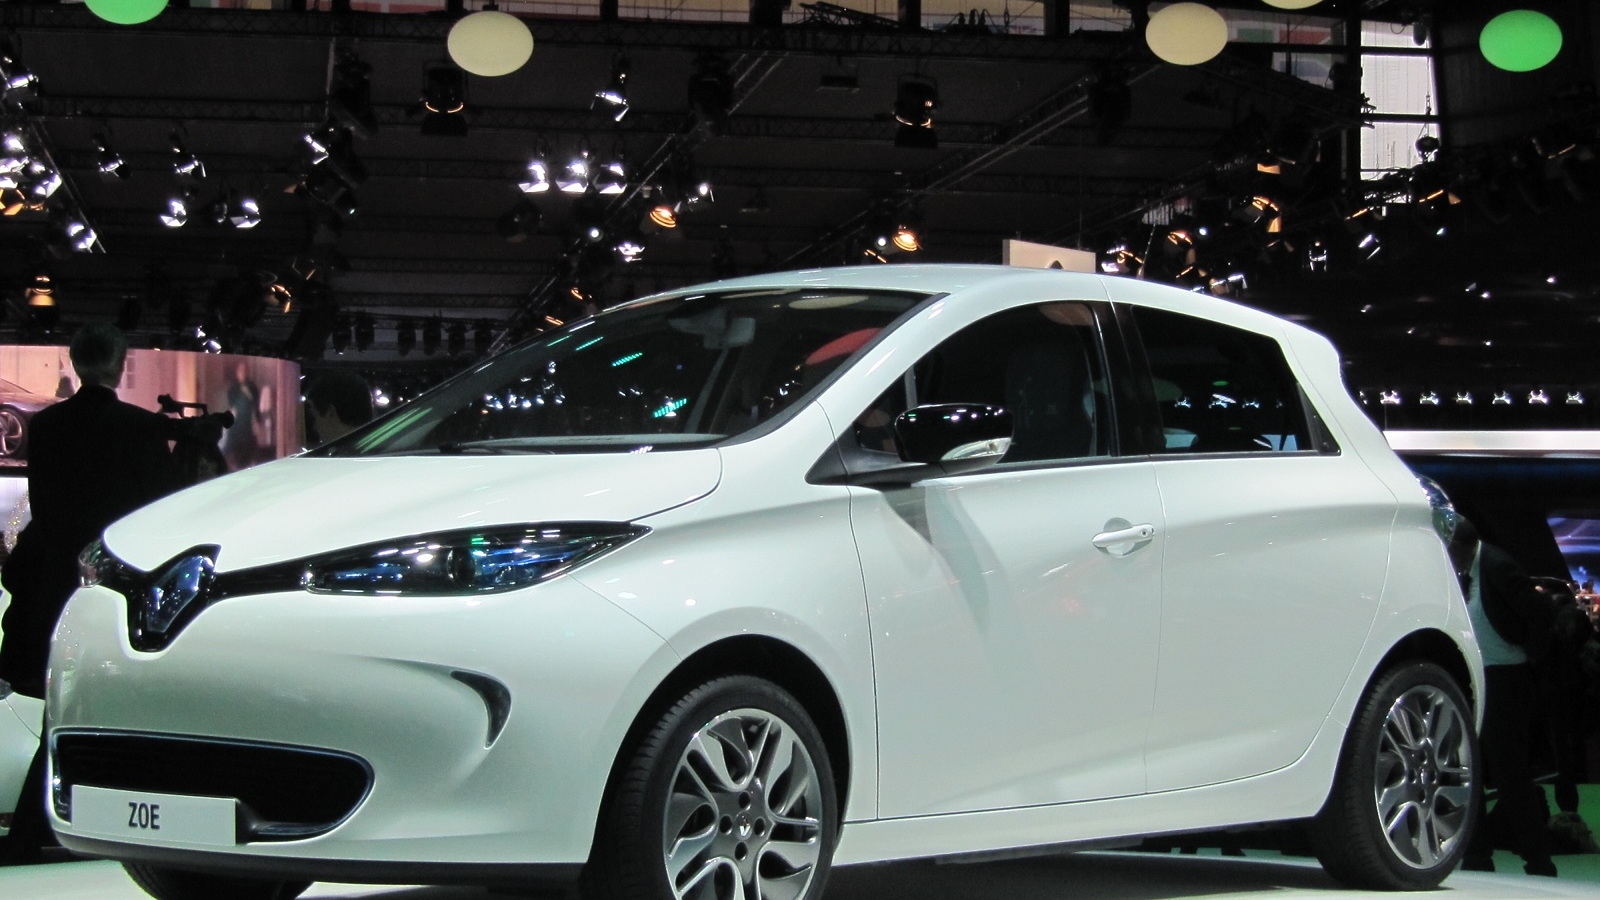 2013 Renault Zoe electric car (European model) at 2012 Paris Auto Show